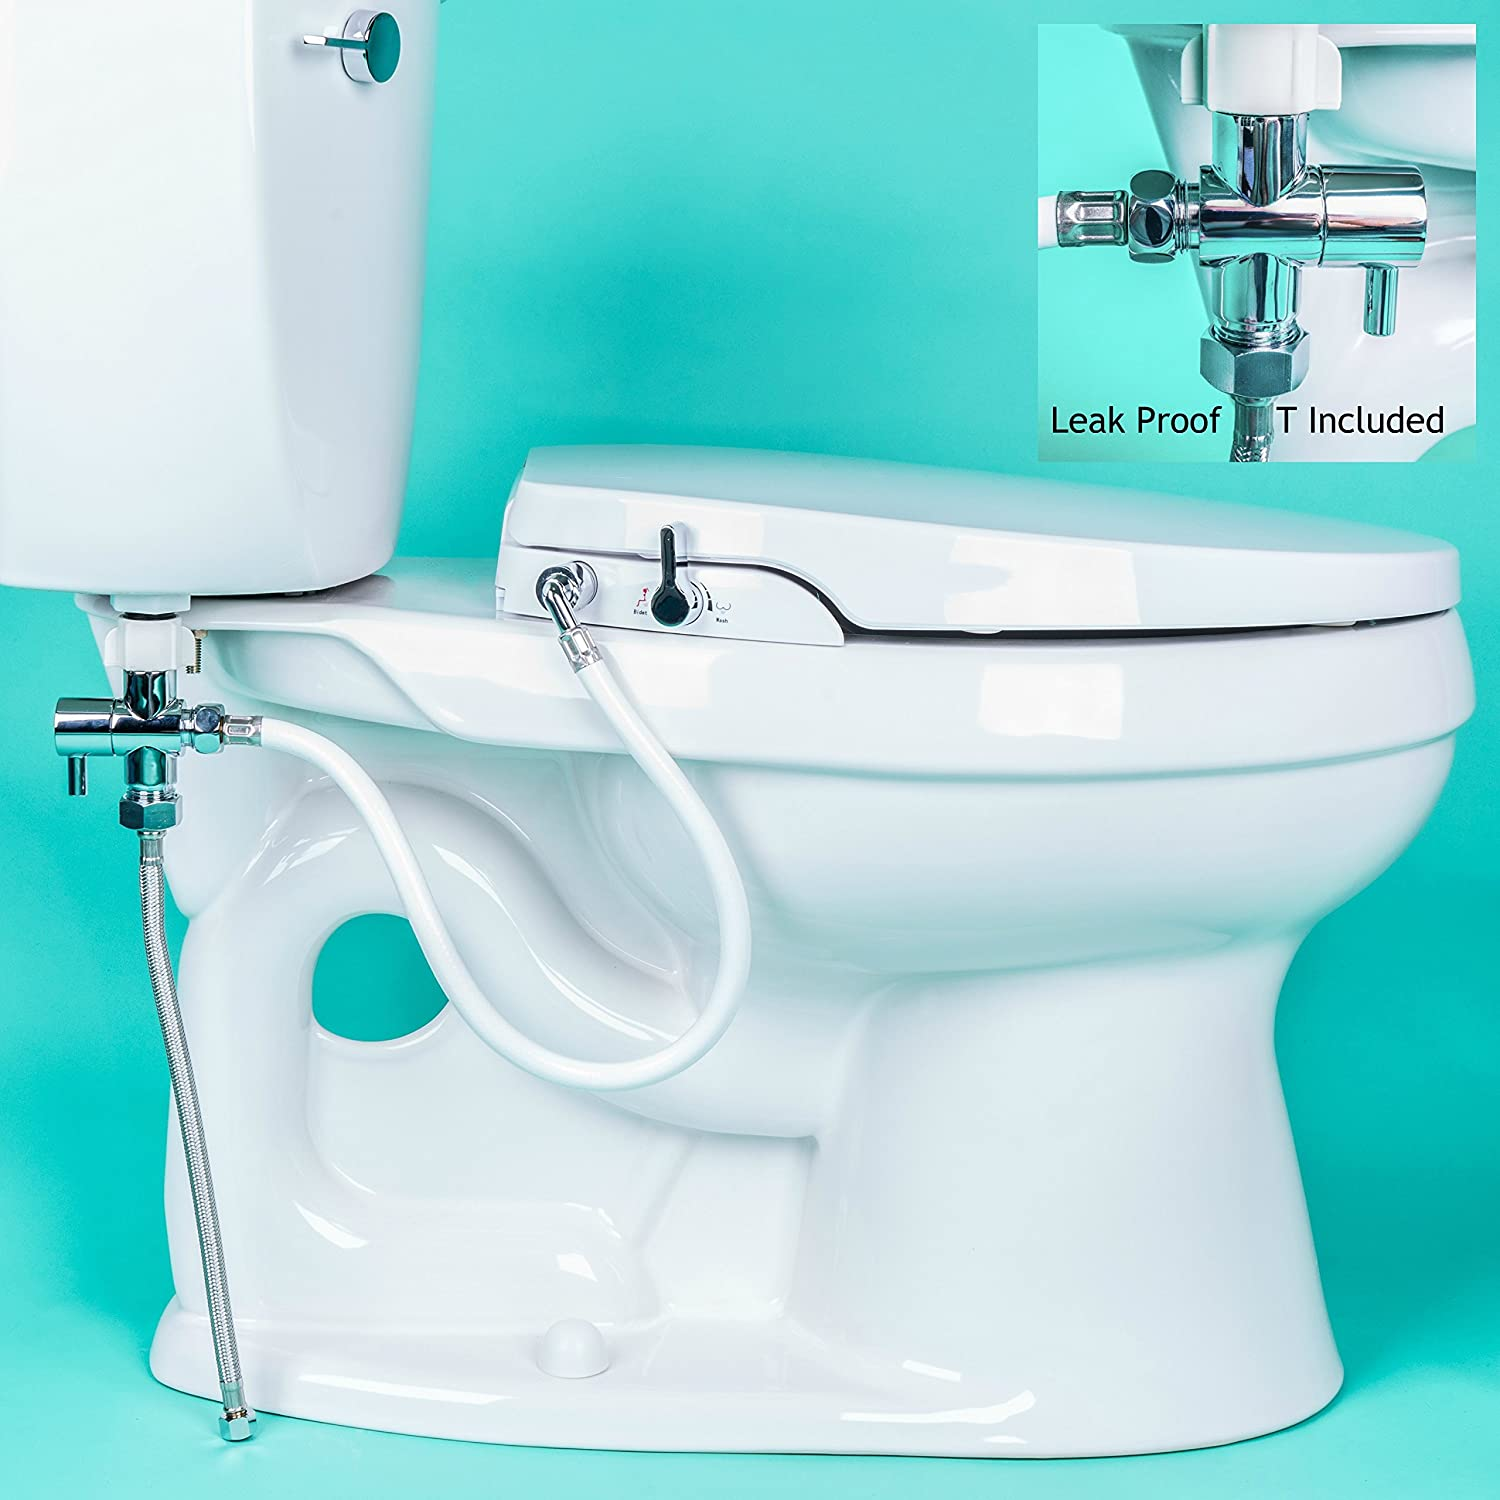 GenieBidet Seat – Self Cleaning Dual Nozzles